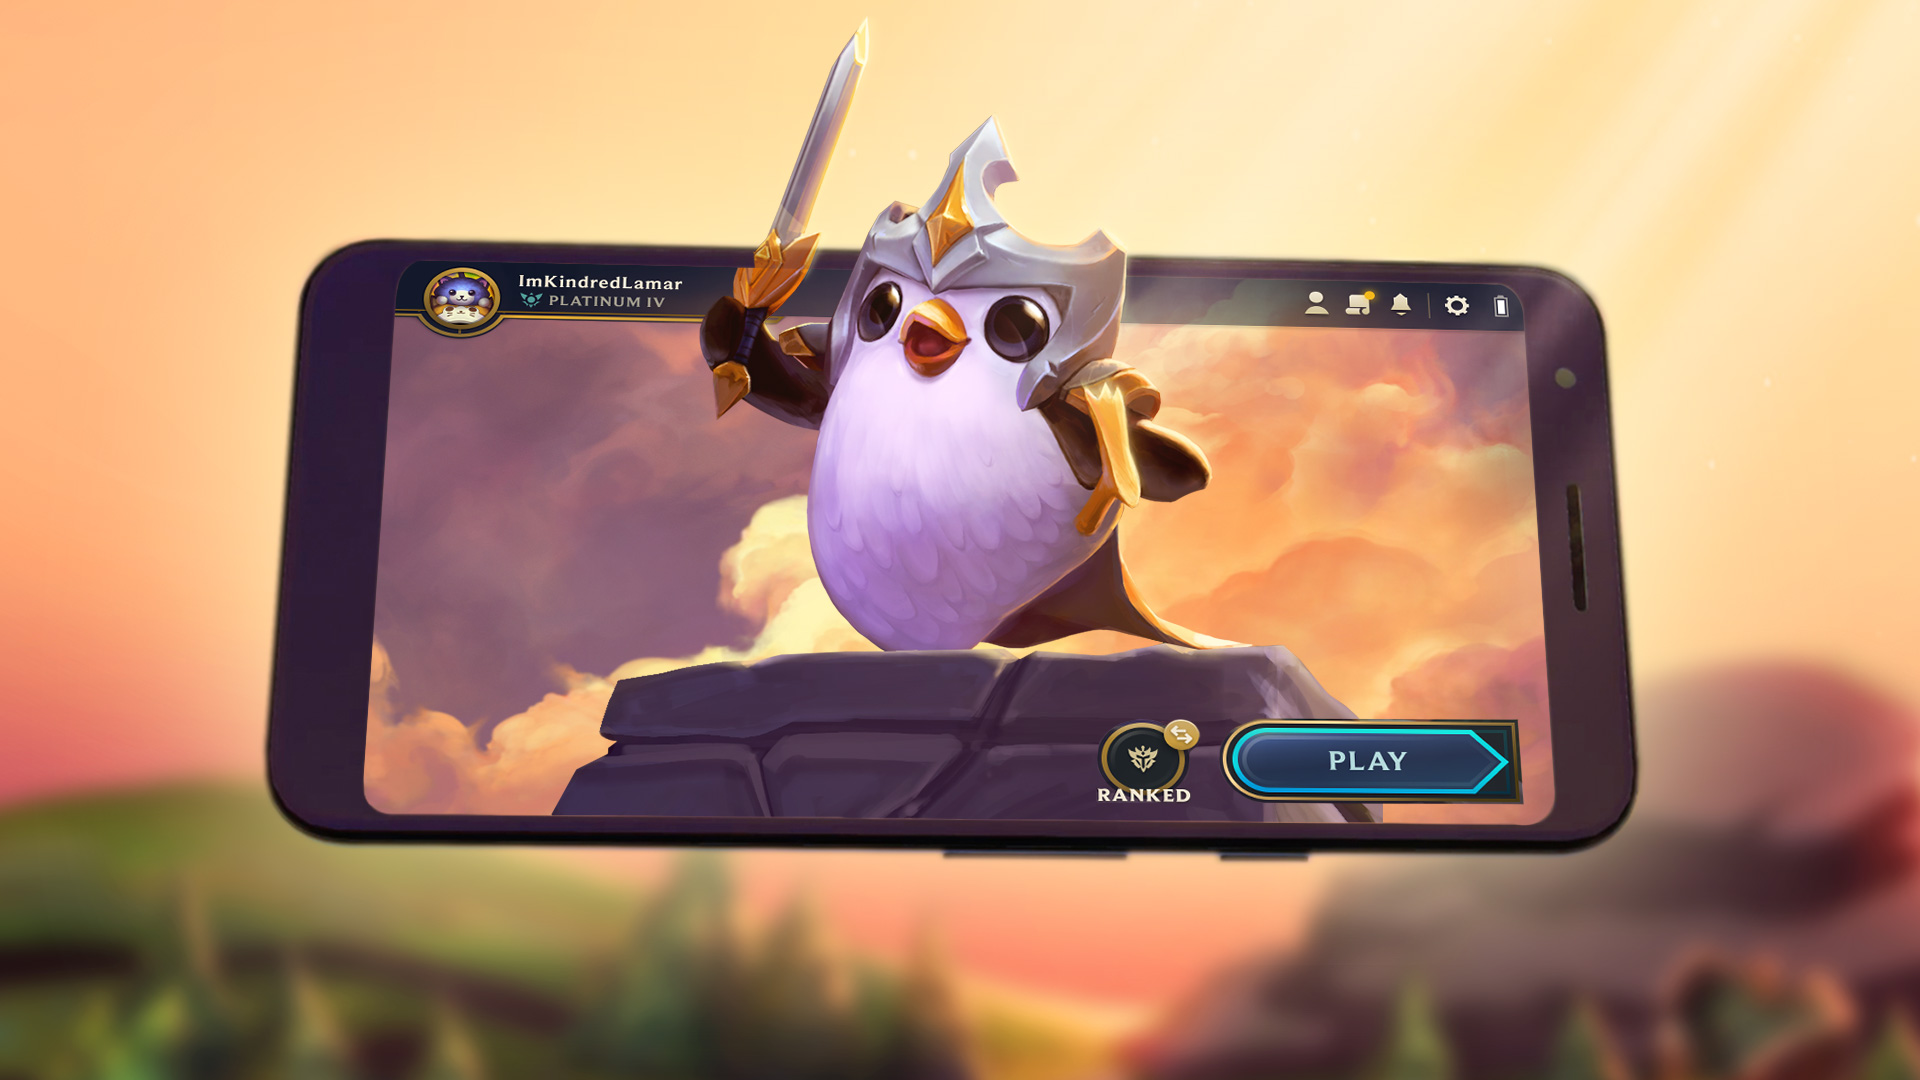 TFT Mobile hands-on: Good, fun, but definitely not perfect